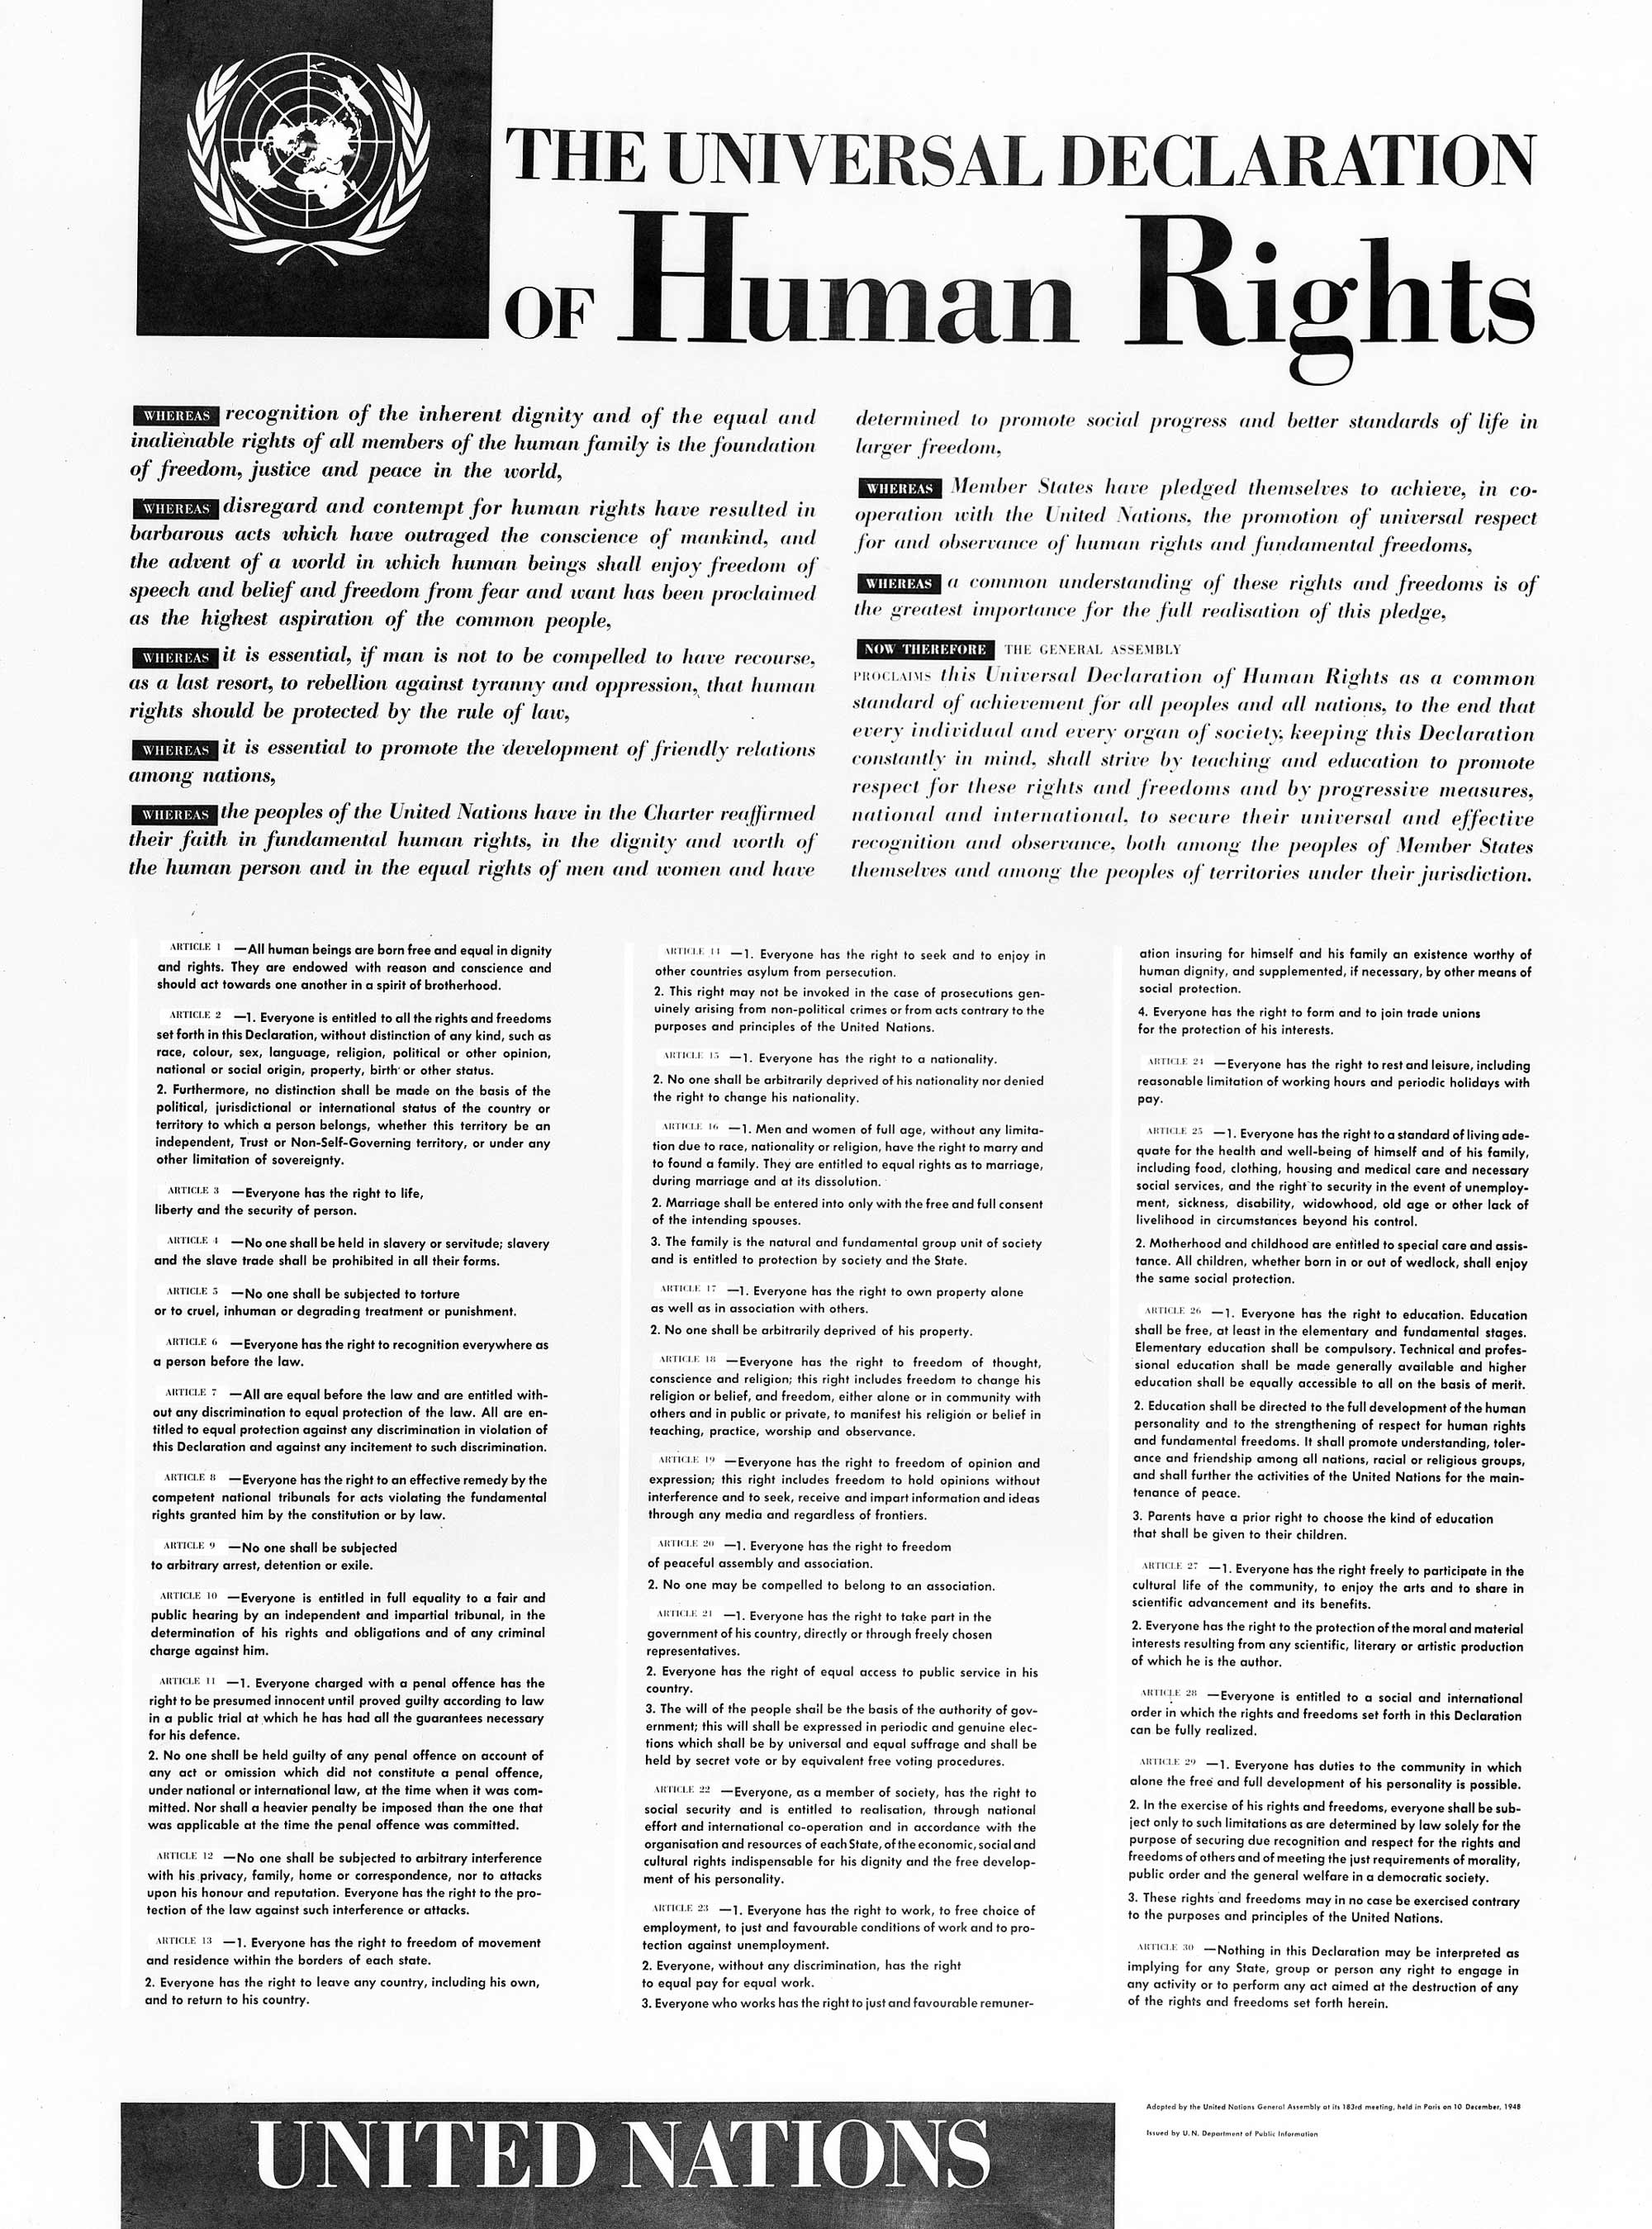 Universal Declaration of Human Rights - Wikipedia